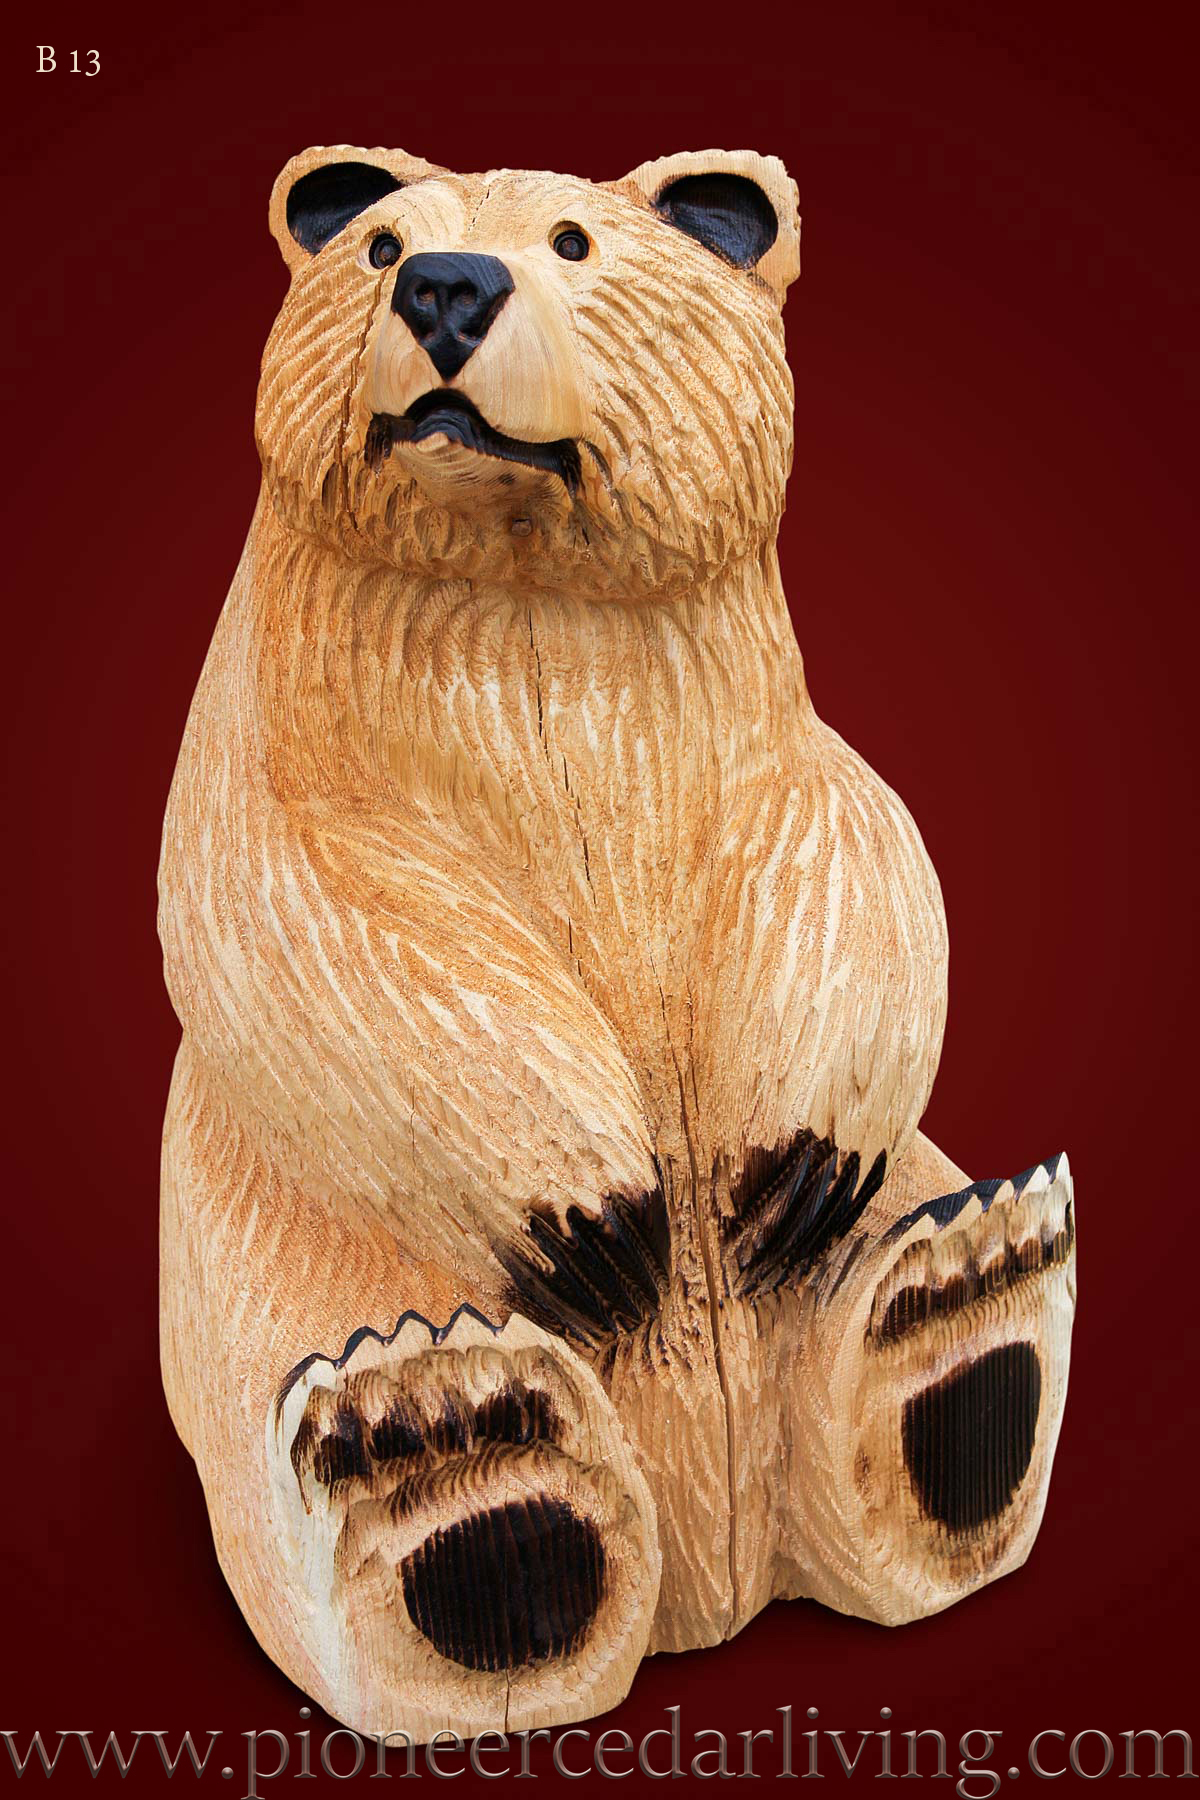 Chainsaw carving of a sitting bear pioneer cedar living